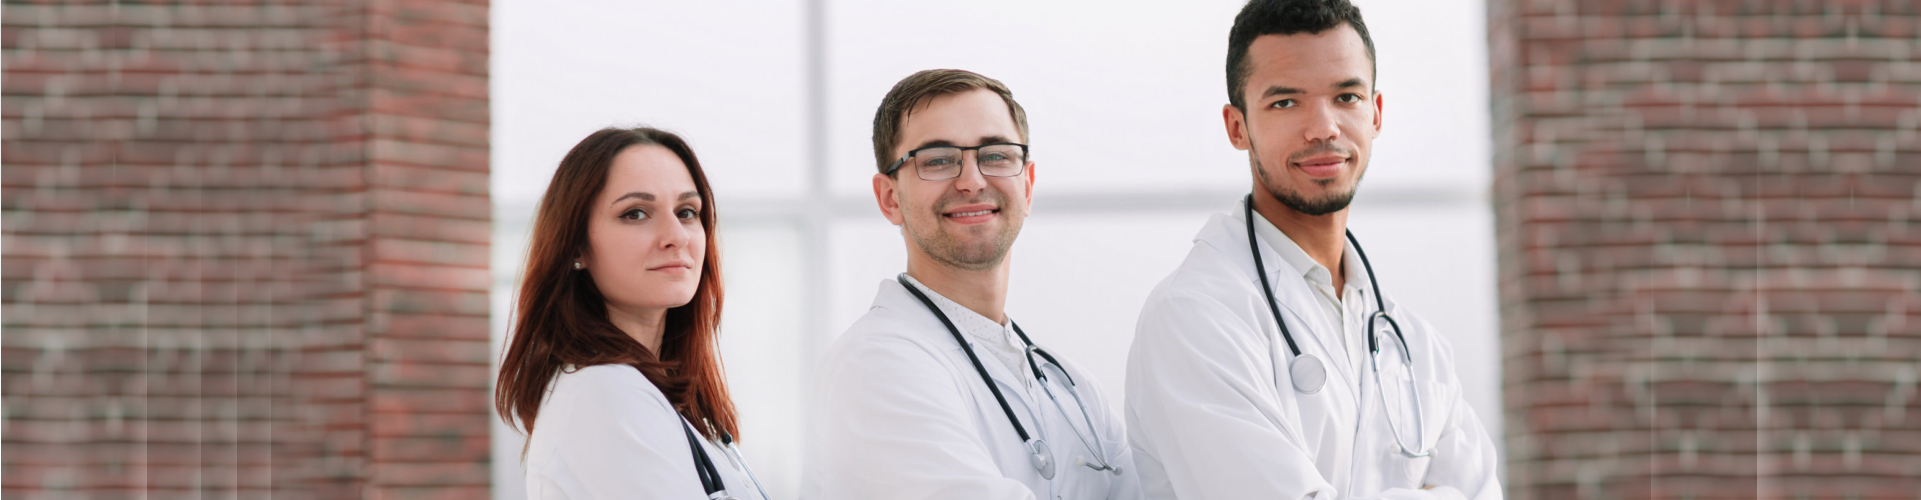 medical staffs standing side by side with arms crossed